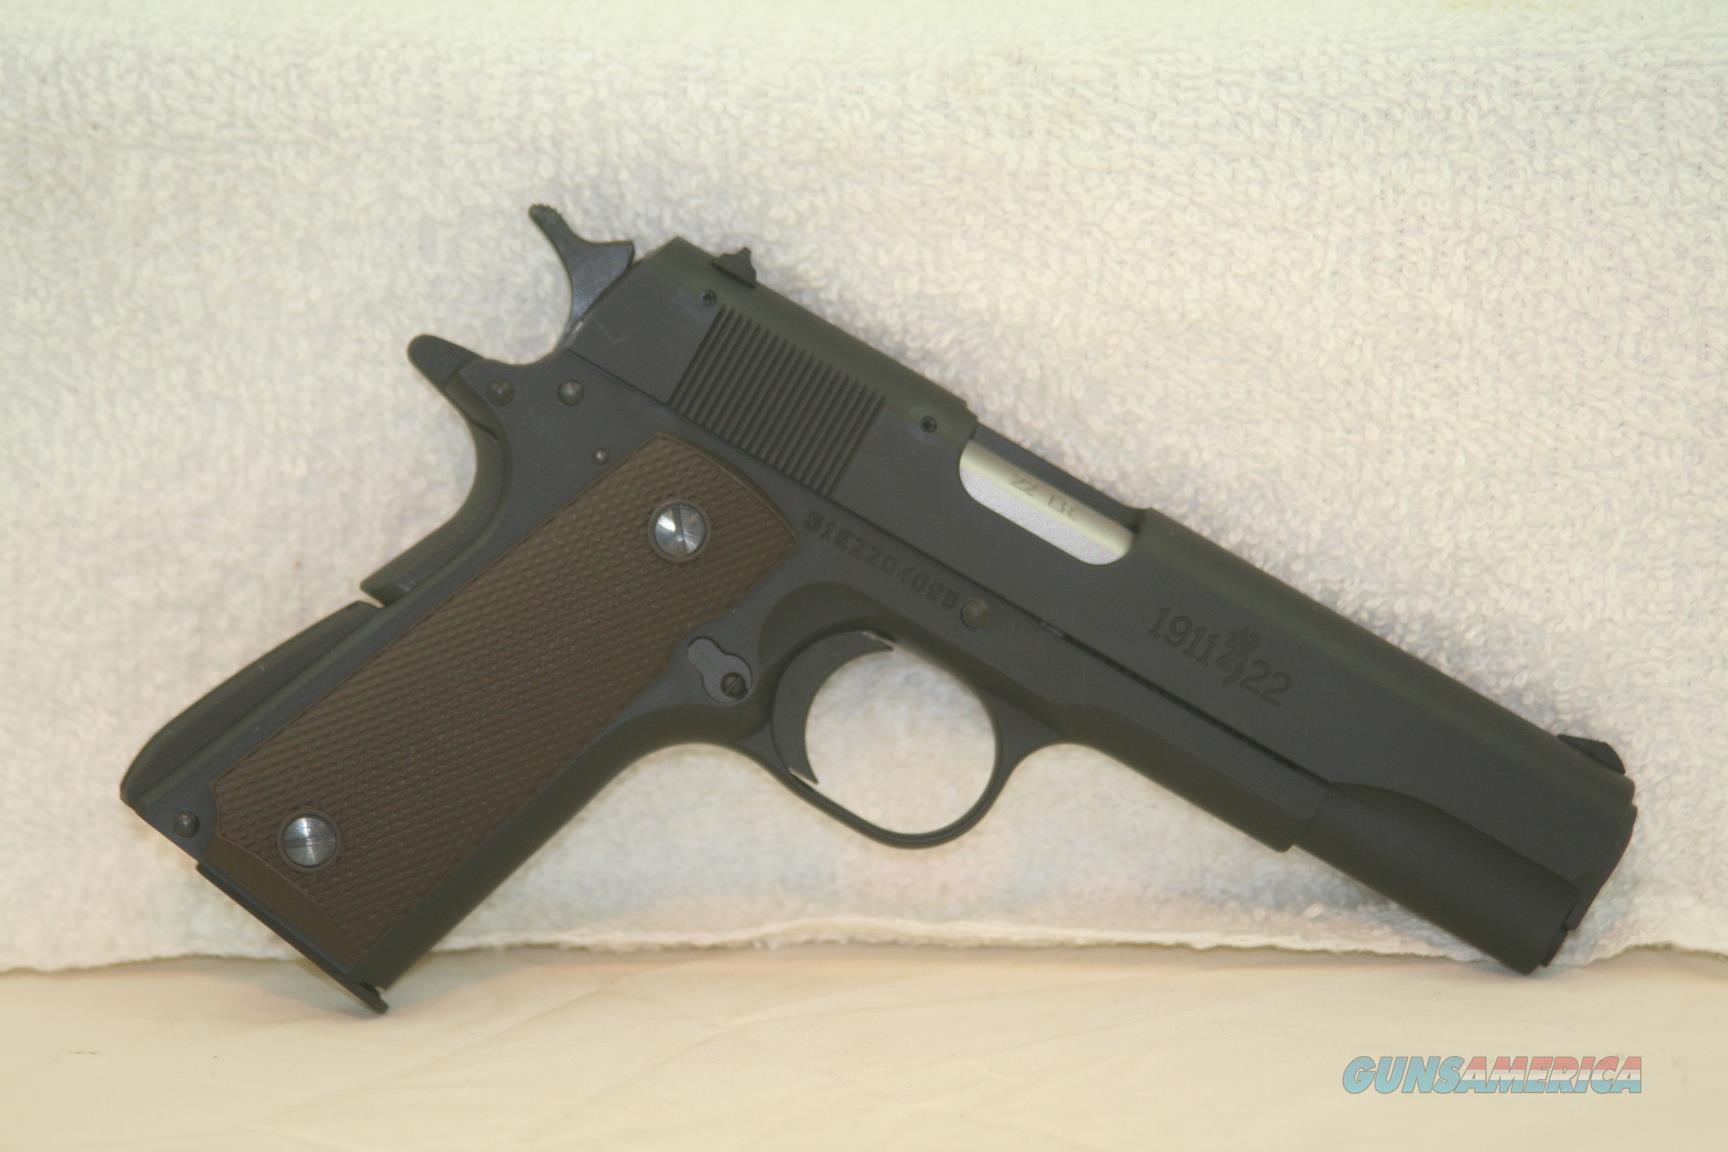 Browning Model 1911 22, 22 LR  Guns > Pistols > Browning Pistols > Other Autos